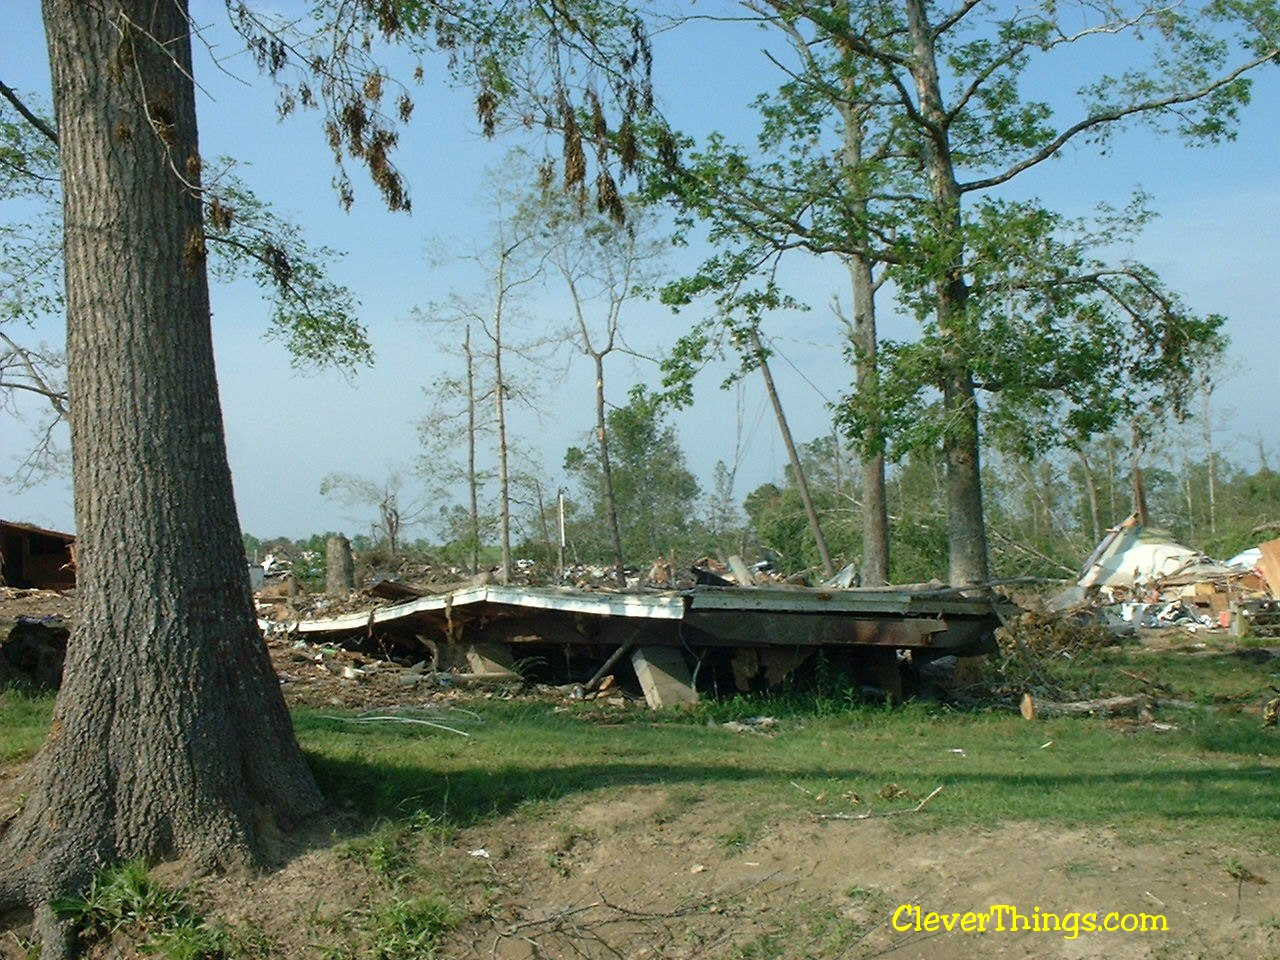 Tornado damage near Arab, Alabama